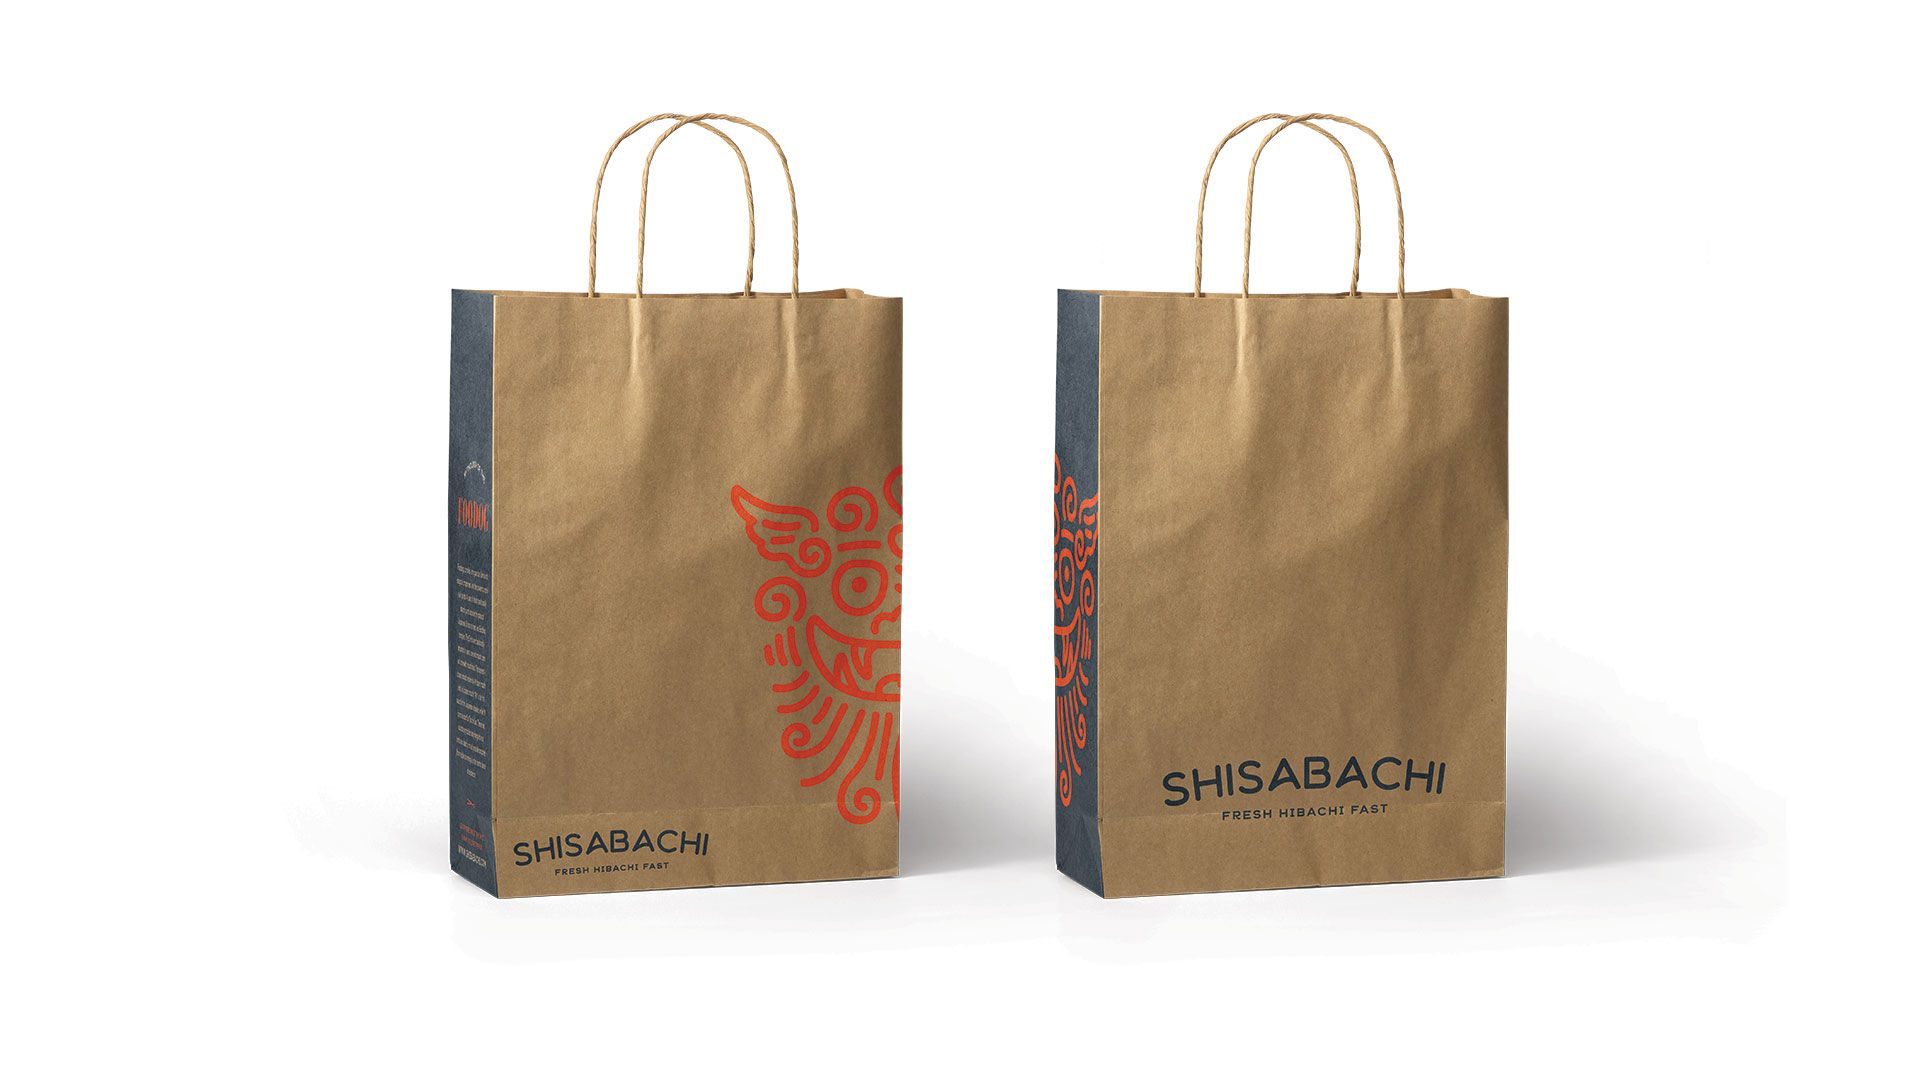 ac167f7c5 shisabachi habachi fast casual restaurant branding bag packaging design